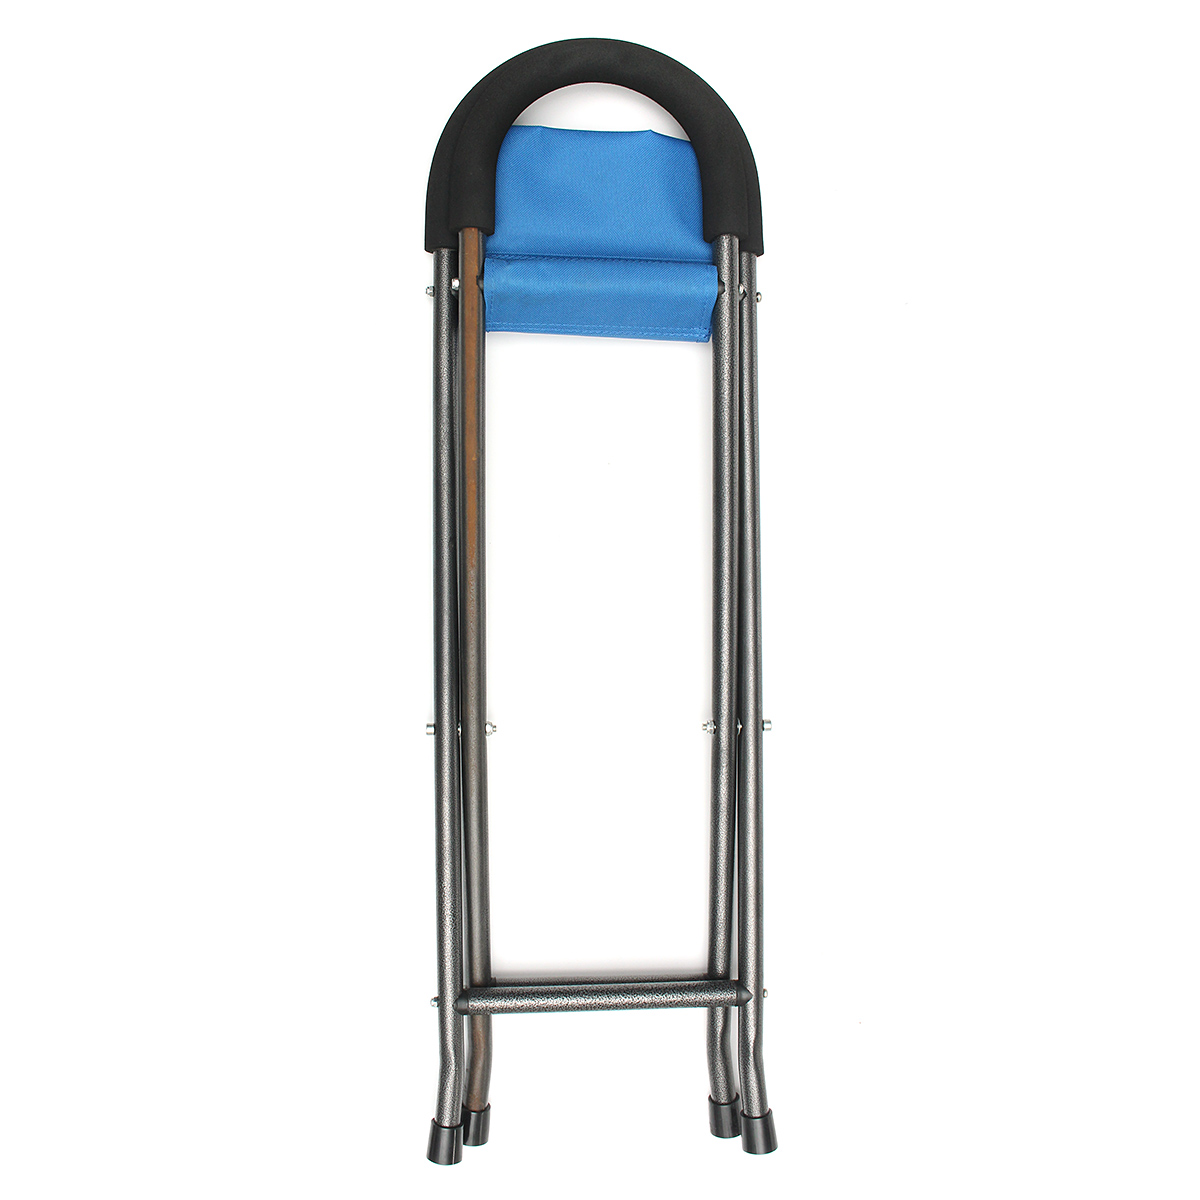 IPRee® Multi-function Folding Pyramid Walking Stick Seat Cane Camp Stool Chair Max Load 100kg